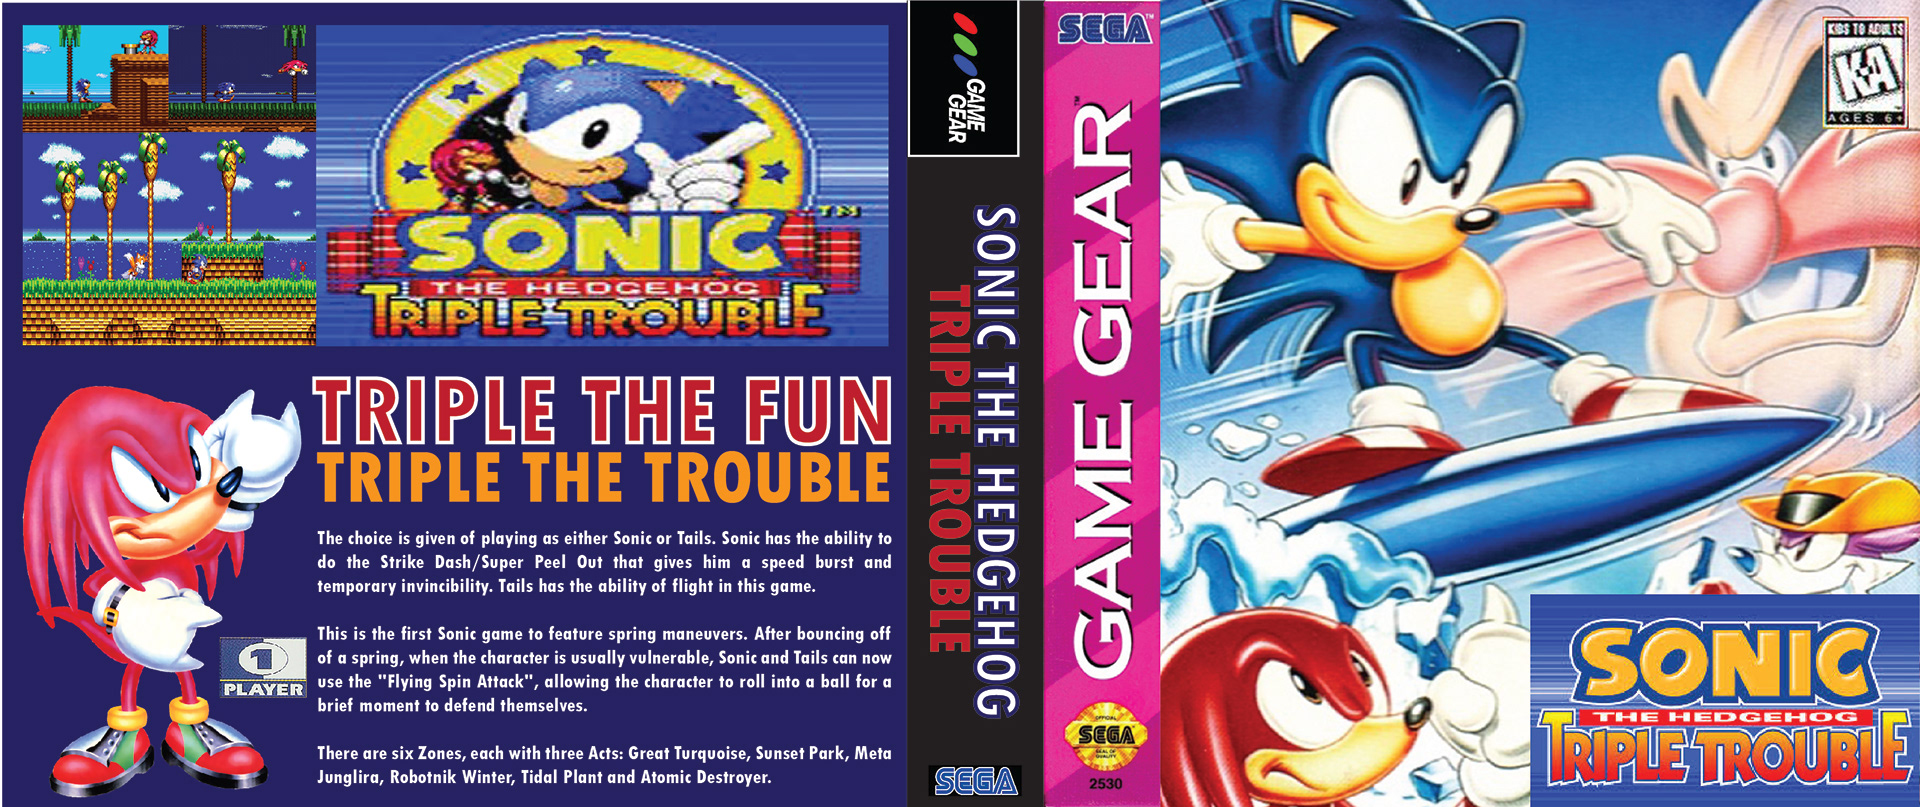 Sam Z Designs Sonic The Hedgehog Classic Game Covers